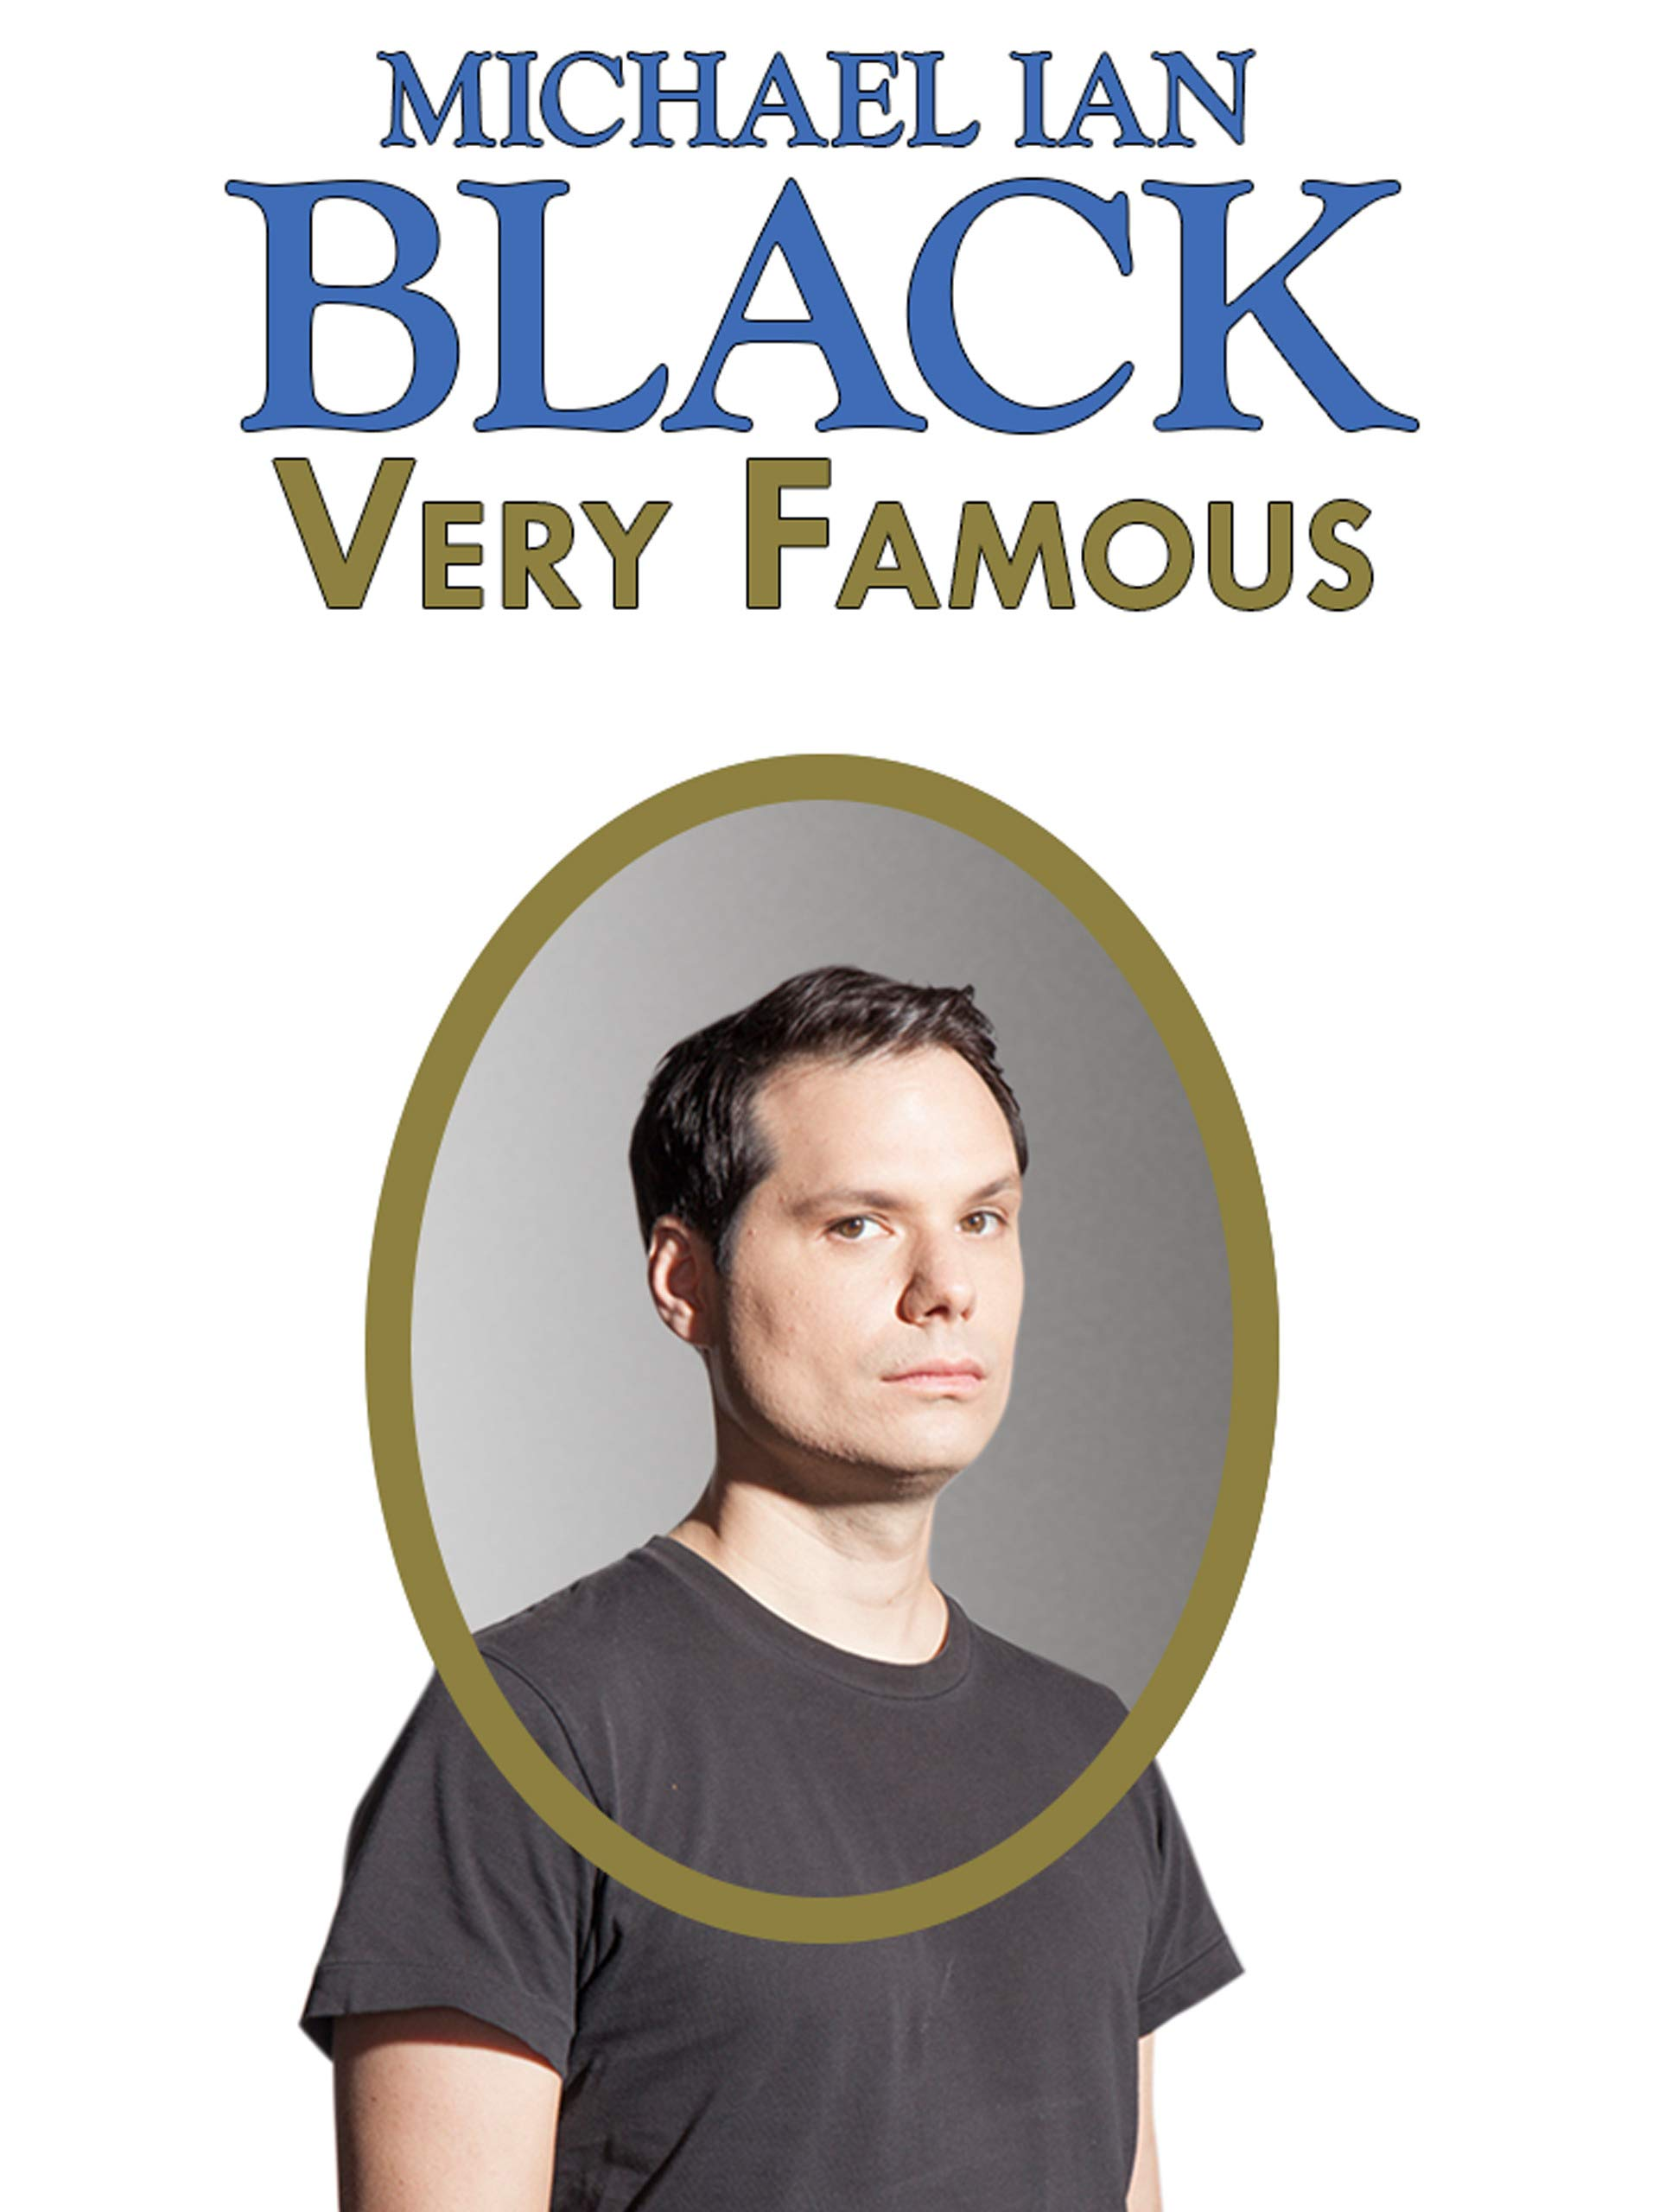 Michael Ian Black: Very Famous on Amazon Prime Video UK